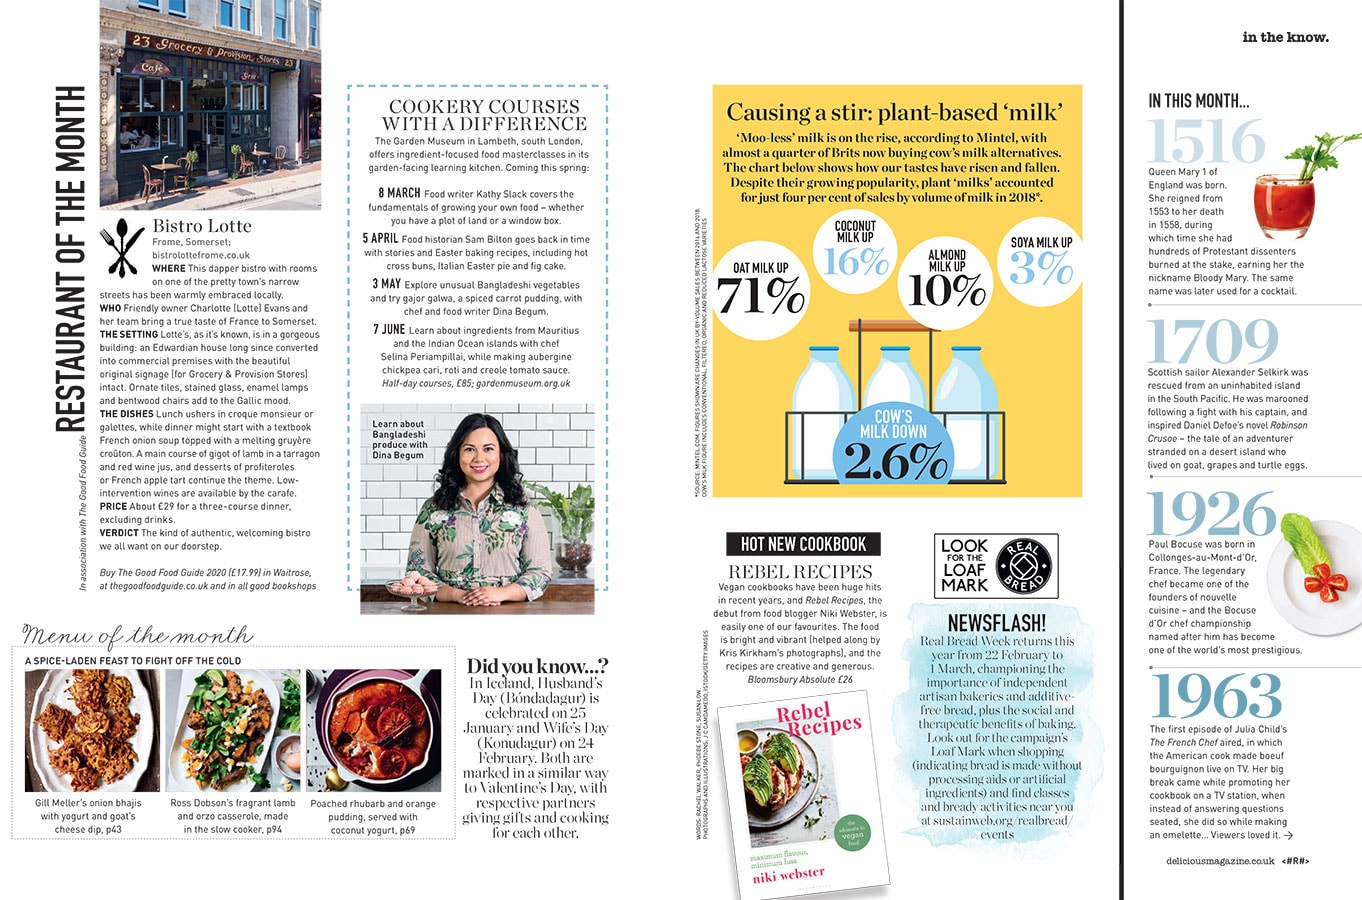 Bistro Lotte featured as restaurant of the month in Delicious magazine